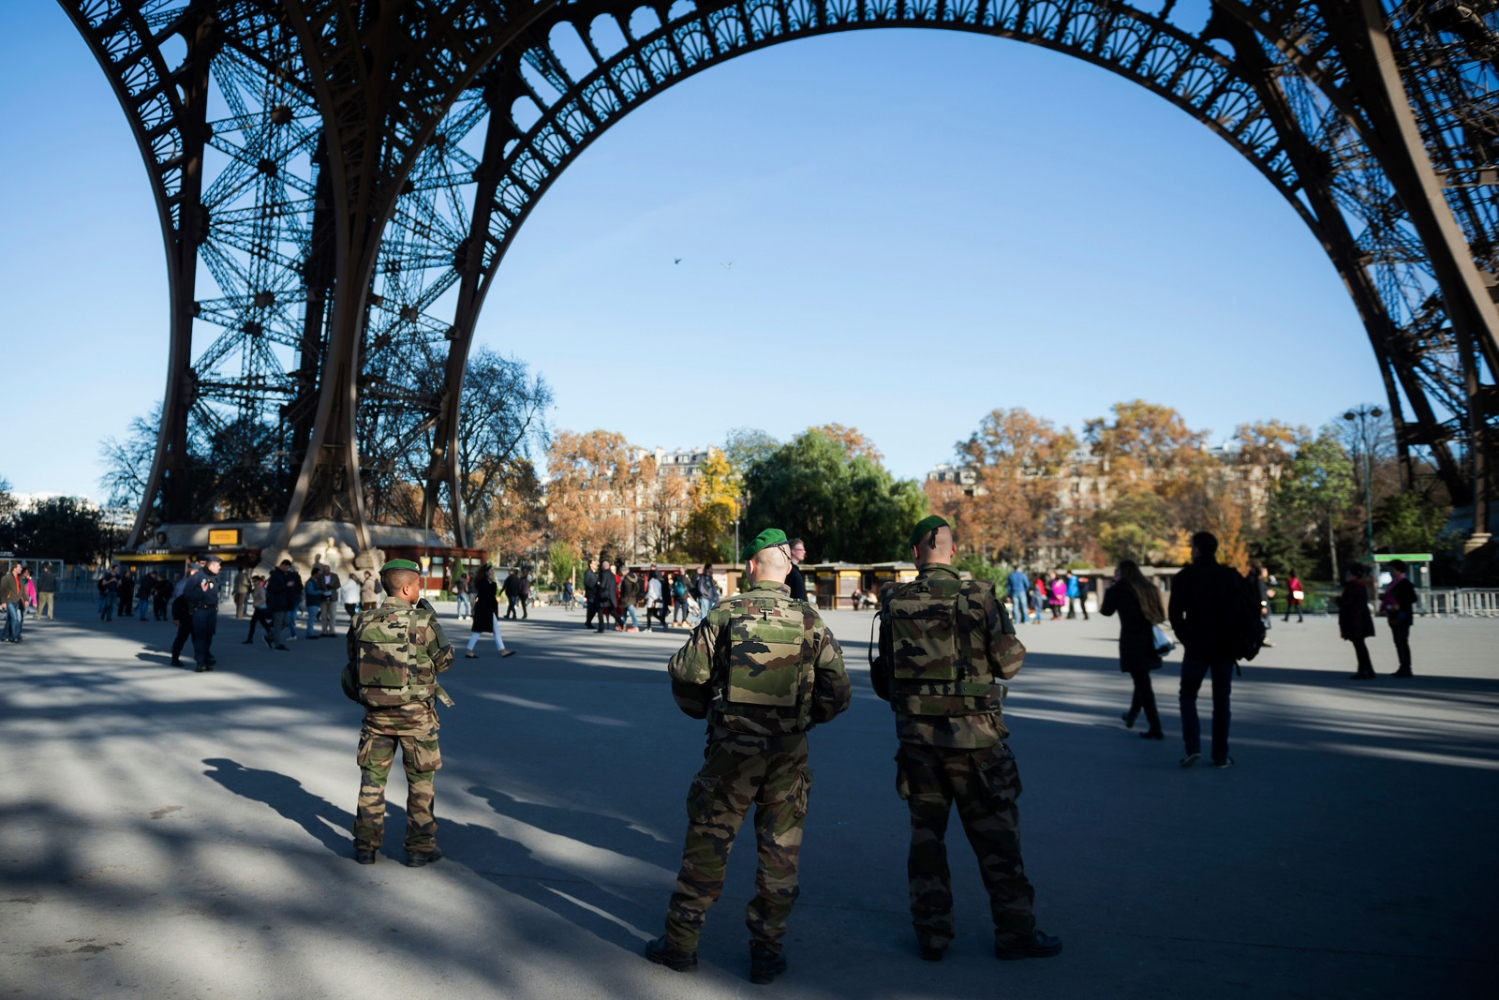 Soldiers patrols the streets under the Eiffel tower two days after several coordinated terrorist attacks that left over a hundred people dead.